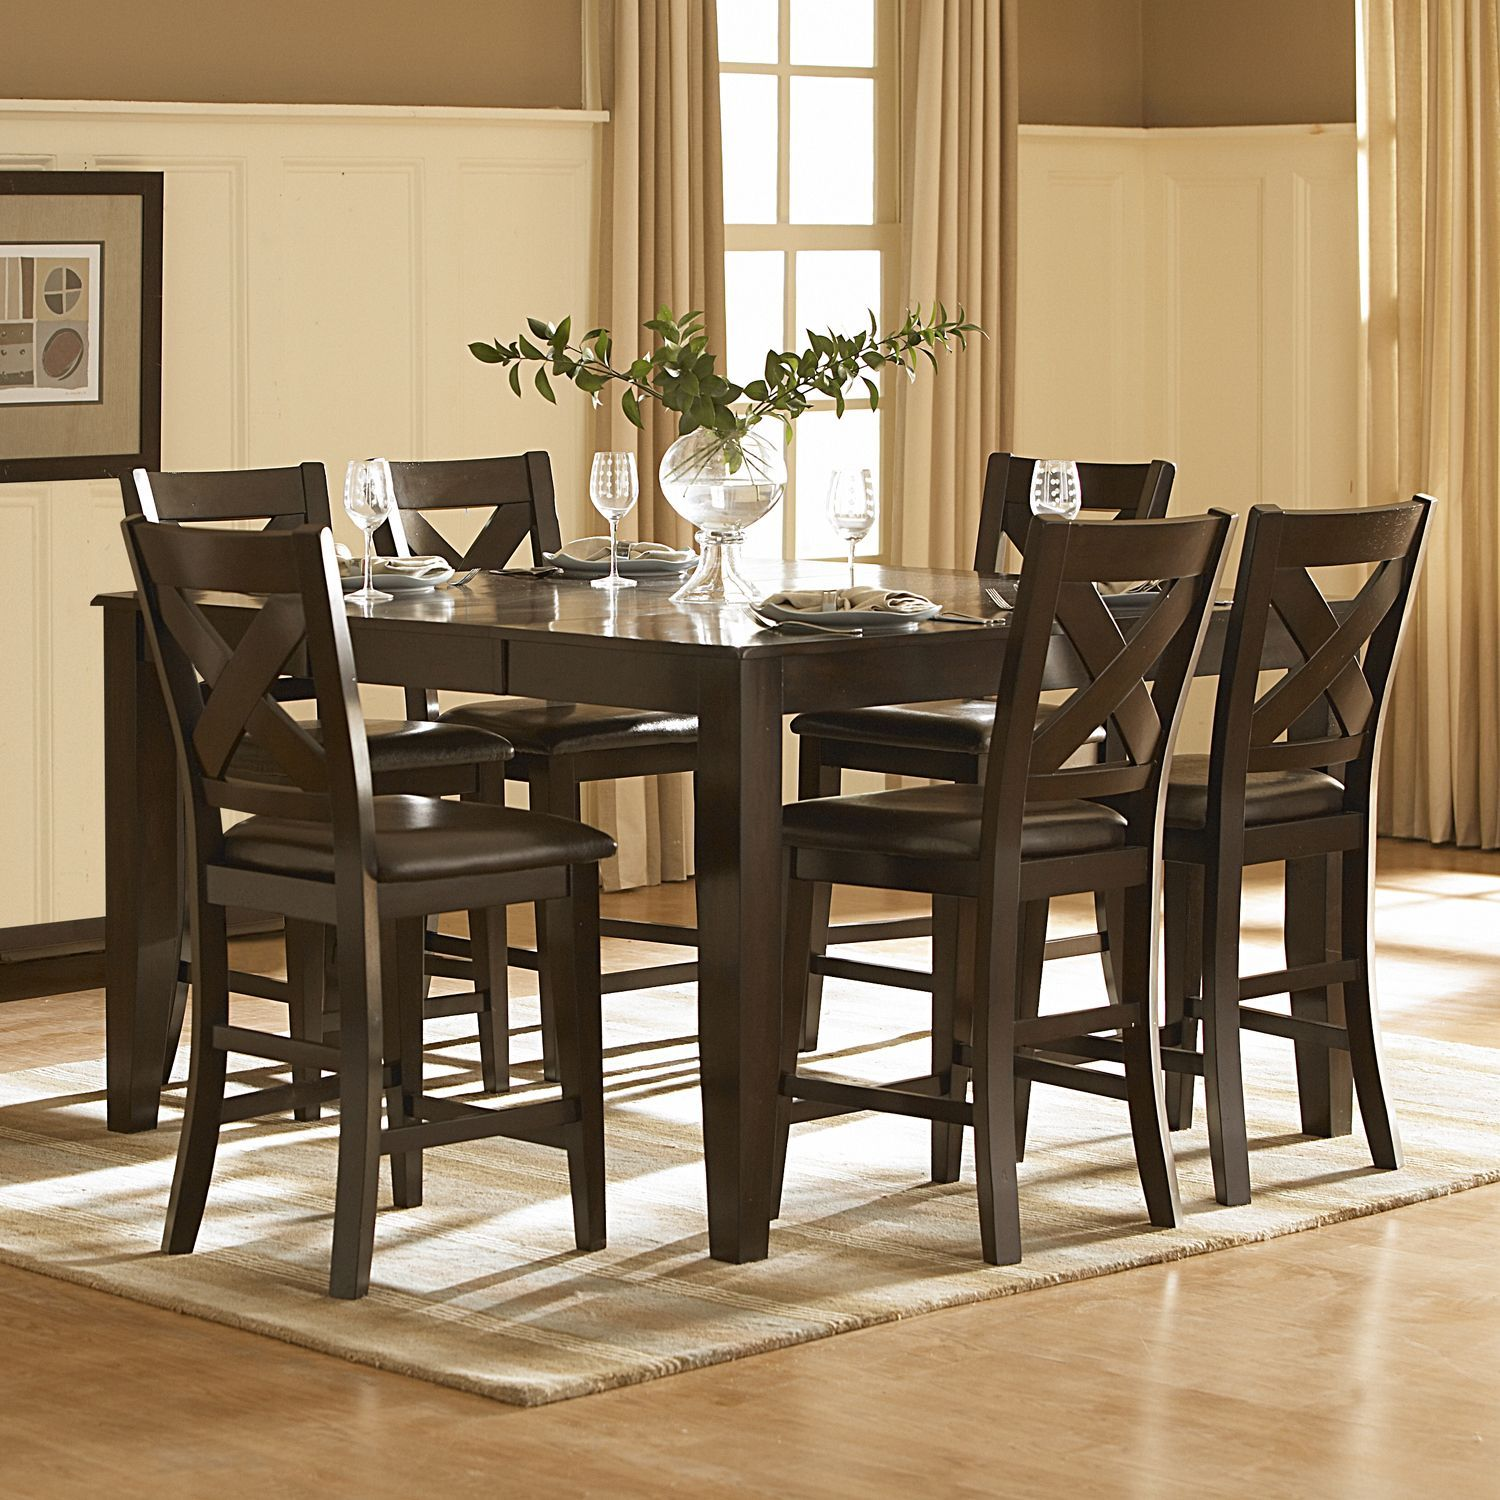 Dining Room Counter Height Sets Tribecca Home Acton Merlot Xback 7Piece Counter Height Dining